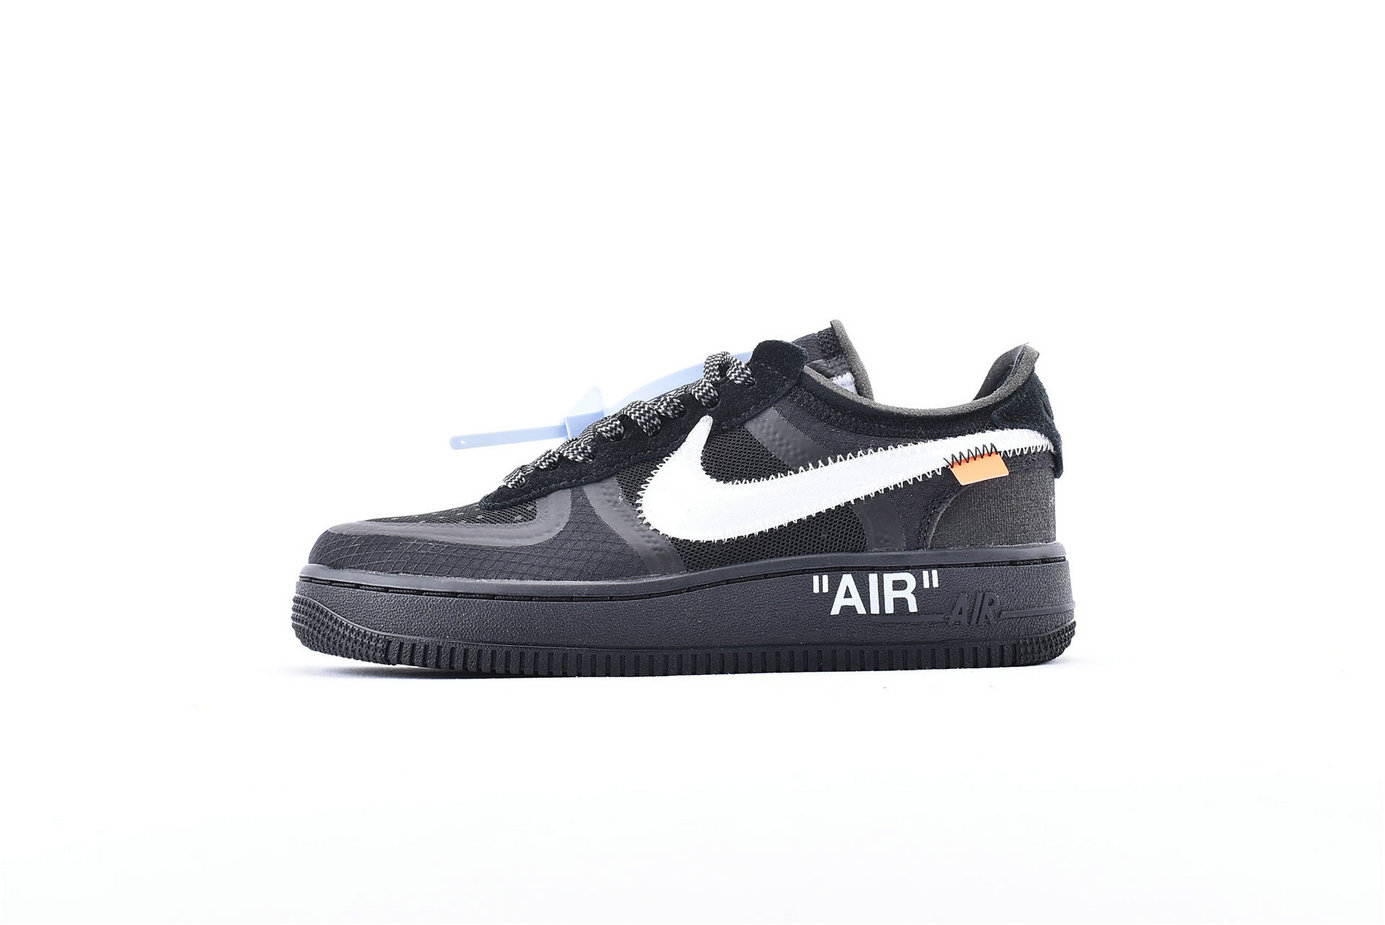 Where To Buy Wholesale Cheap Womens Off-White x Nike Air Force 1 Low Black-White-Cone-Black AO4606-001 - www.wholesaleflyknit.com